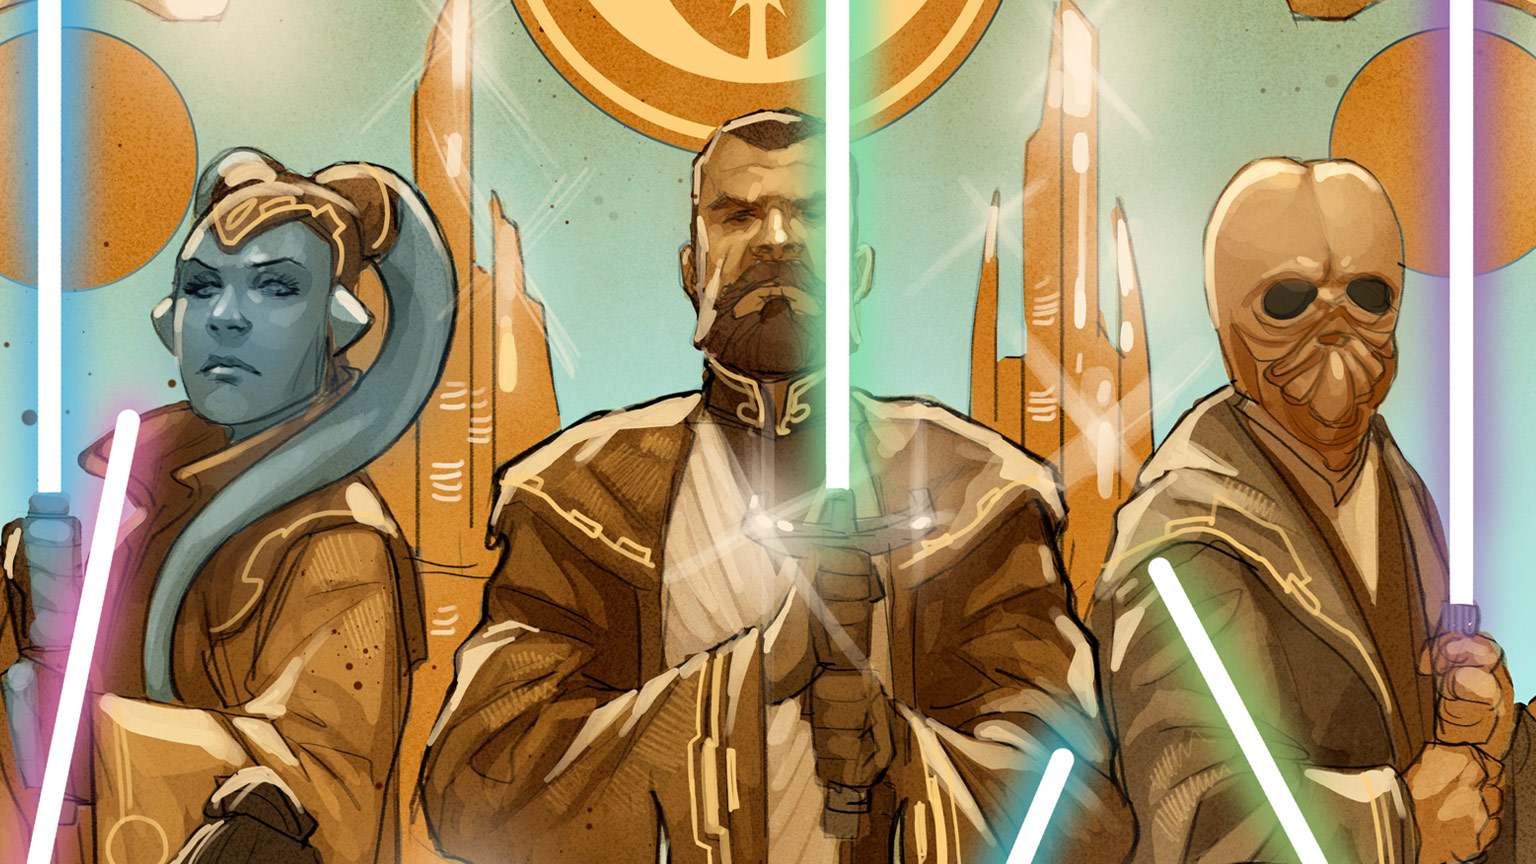 """""""The High Republic"""" is a multi-platform """"Star Wars"""" project that will tell the story of the New Republic about 200 years before the prequel trilogy, focusing on the Jedi Knights during their prime."""